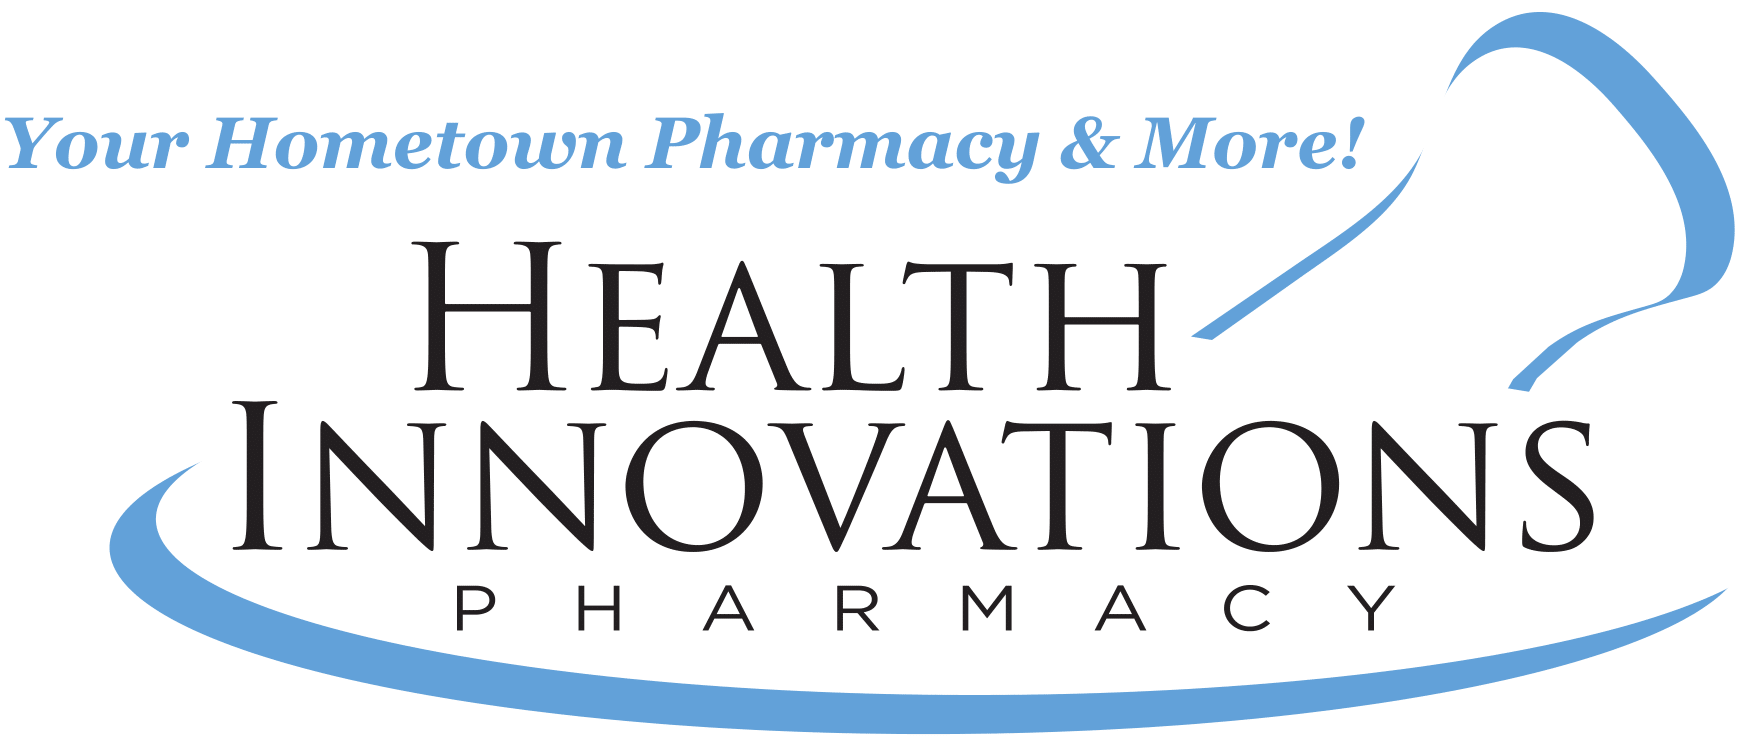 New - Health Innovations Pharmacy